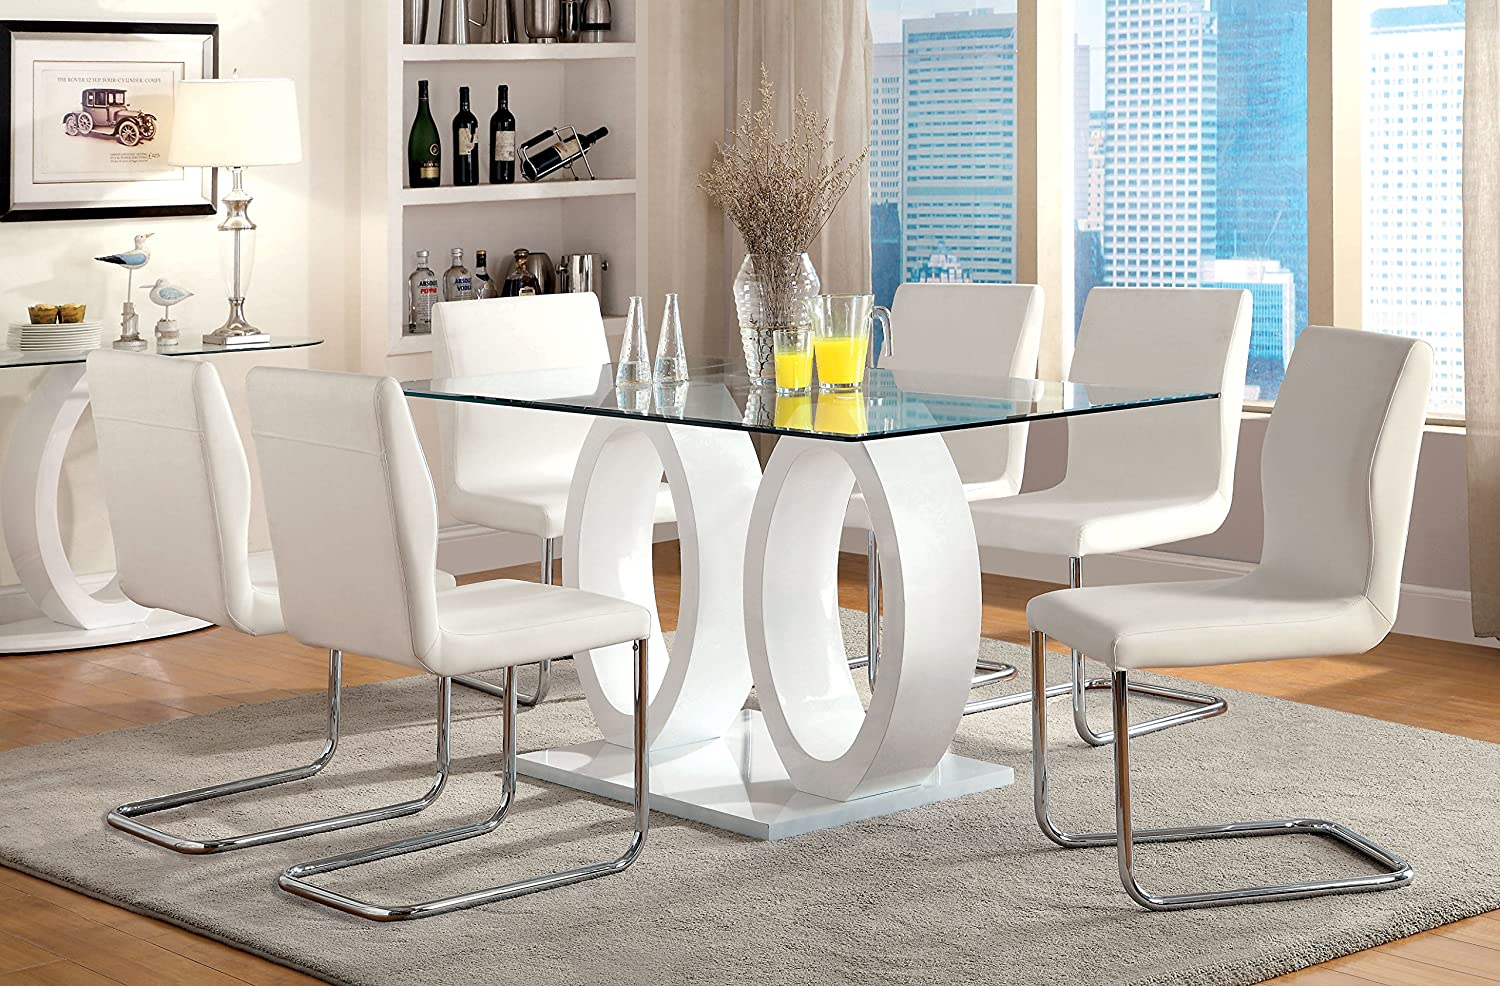 pedestal dining room table. Amazon.com - Furniture Of America Quezon Glass Top Double Pedestal Dining Table, White Tables Room Table D